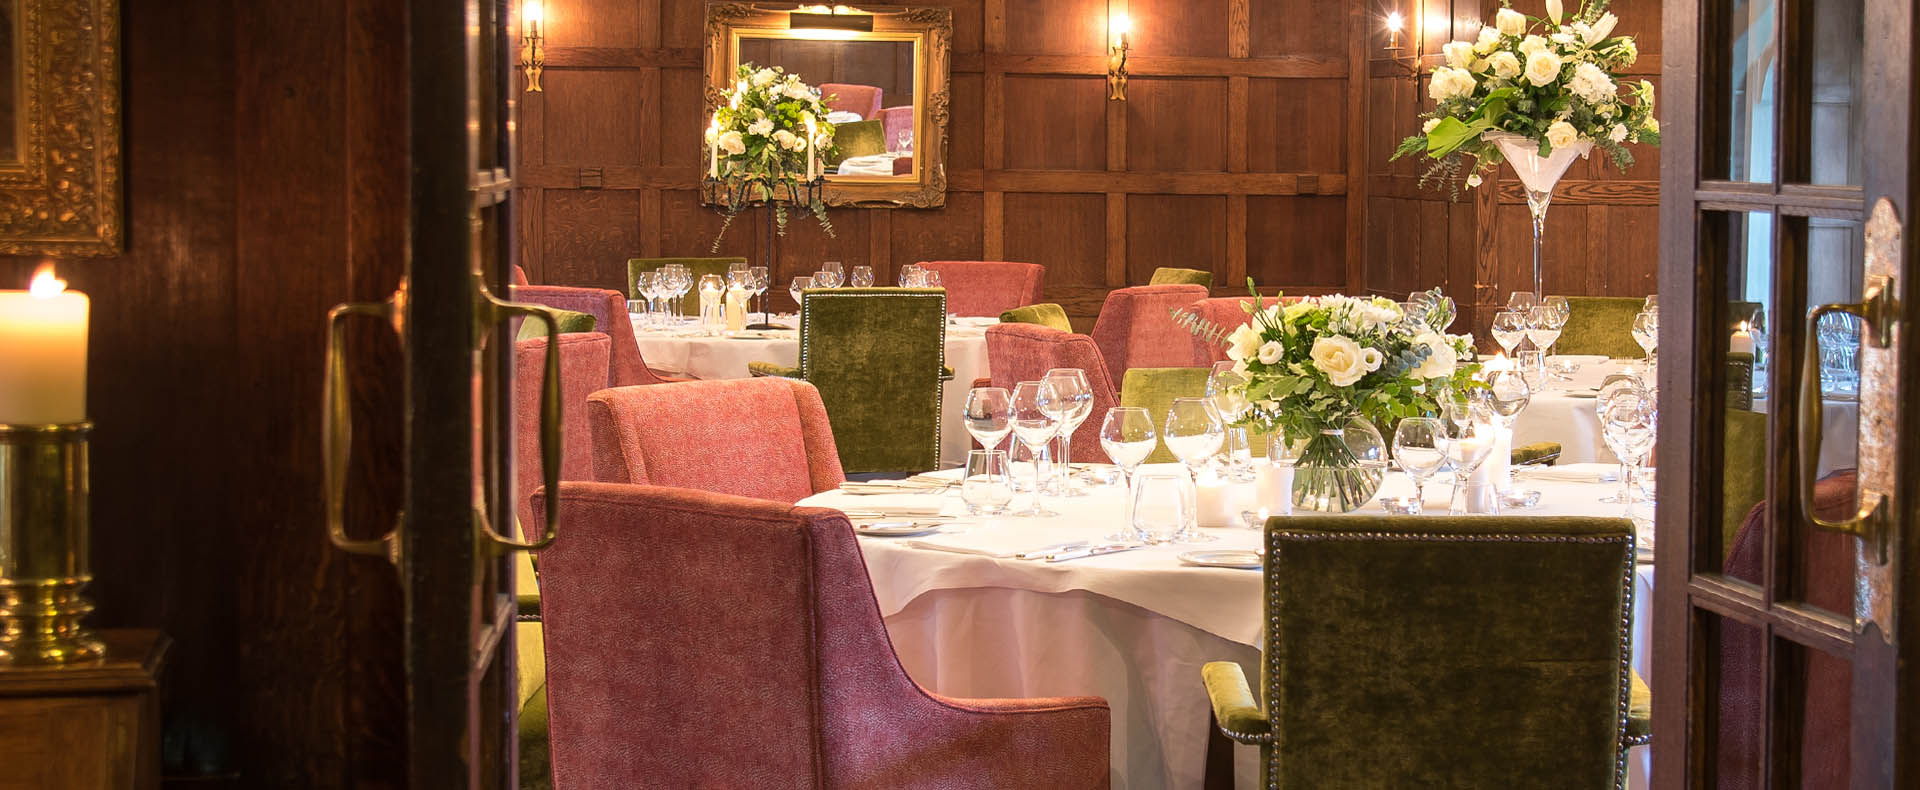 Wedding Packages | The Montagu Arms Hotel